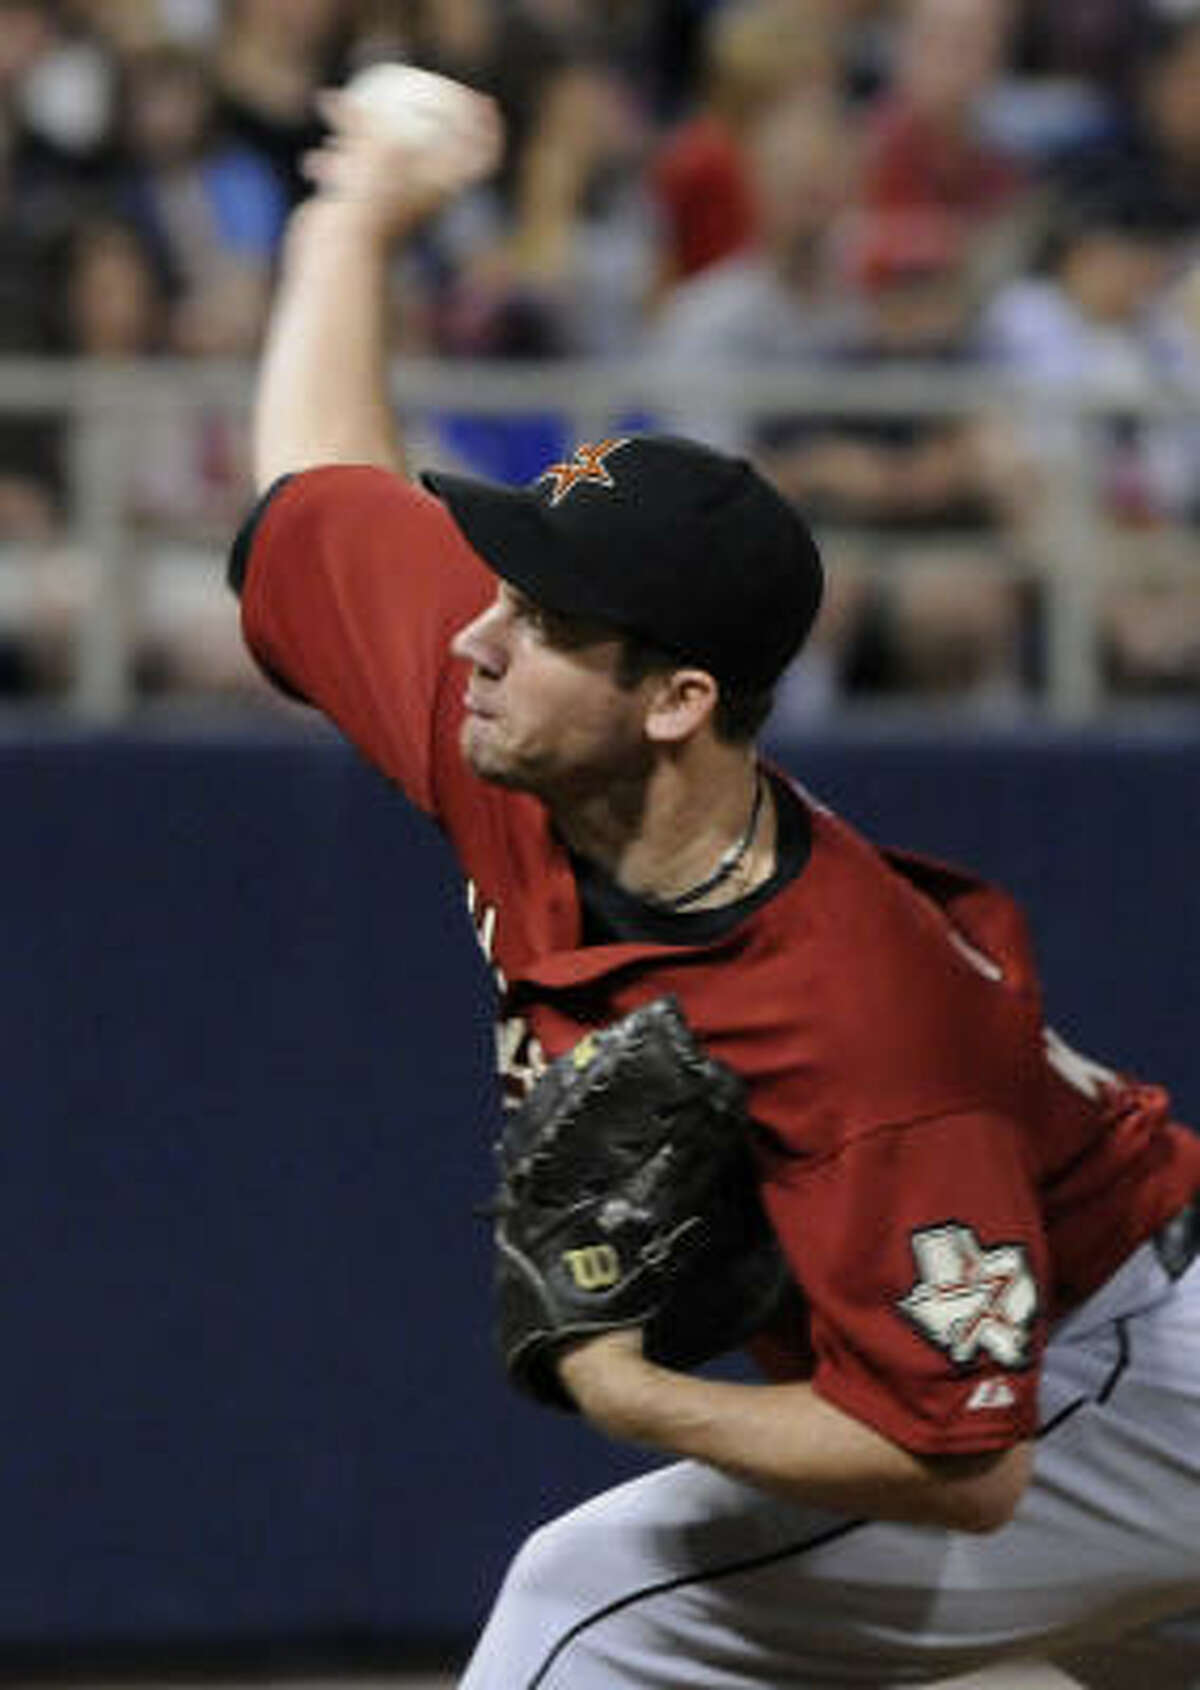 Houston Astros' Roy Oswalt pitches against the Minnesota Twins in the first inning.